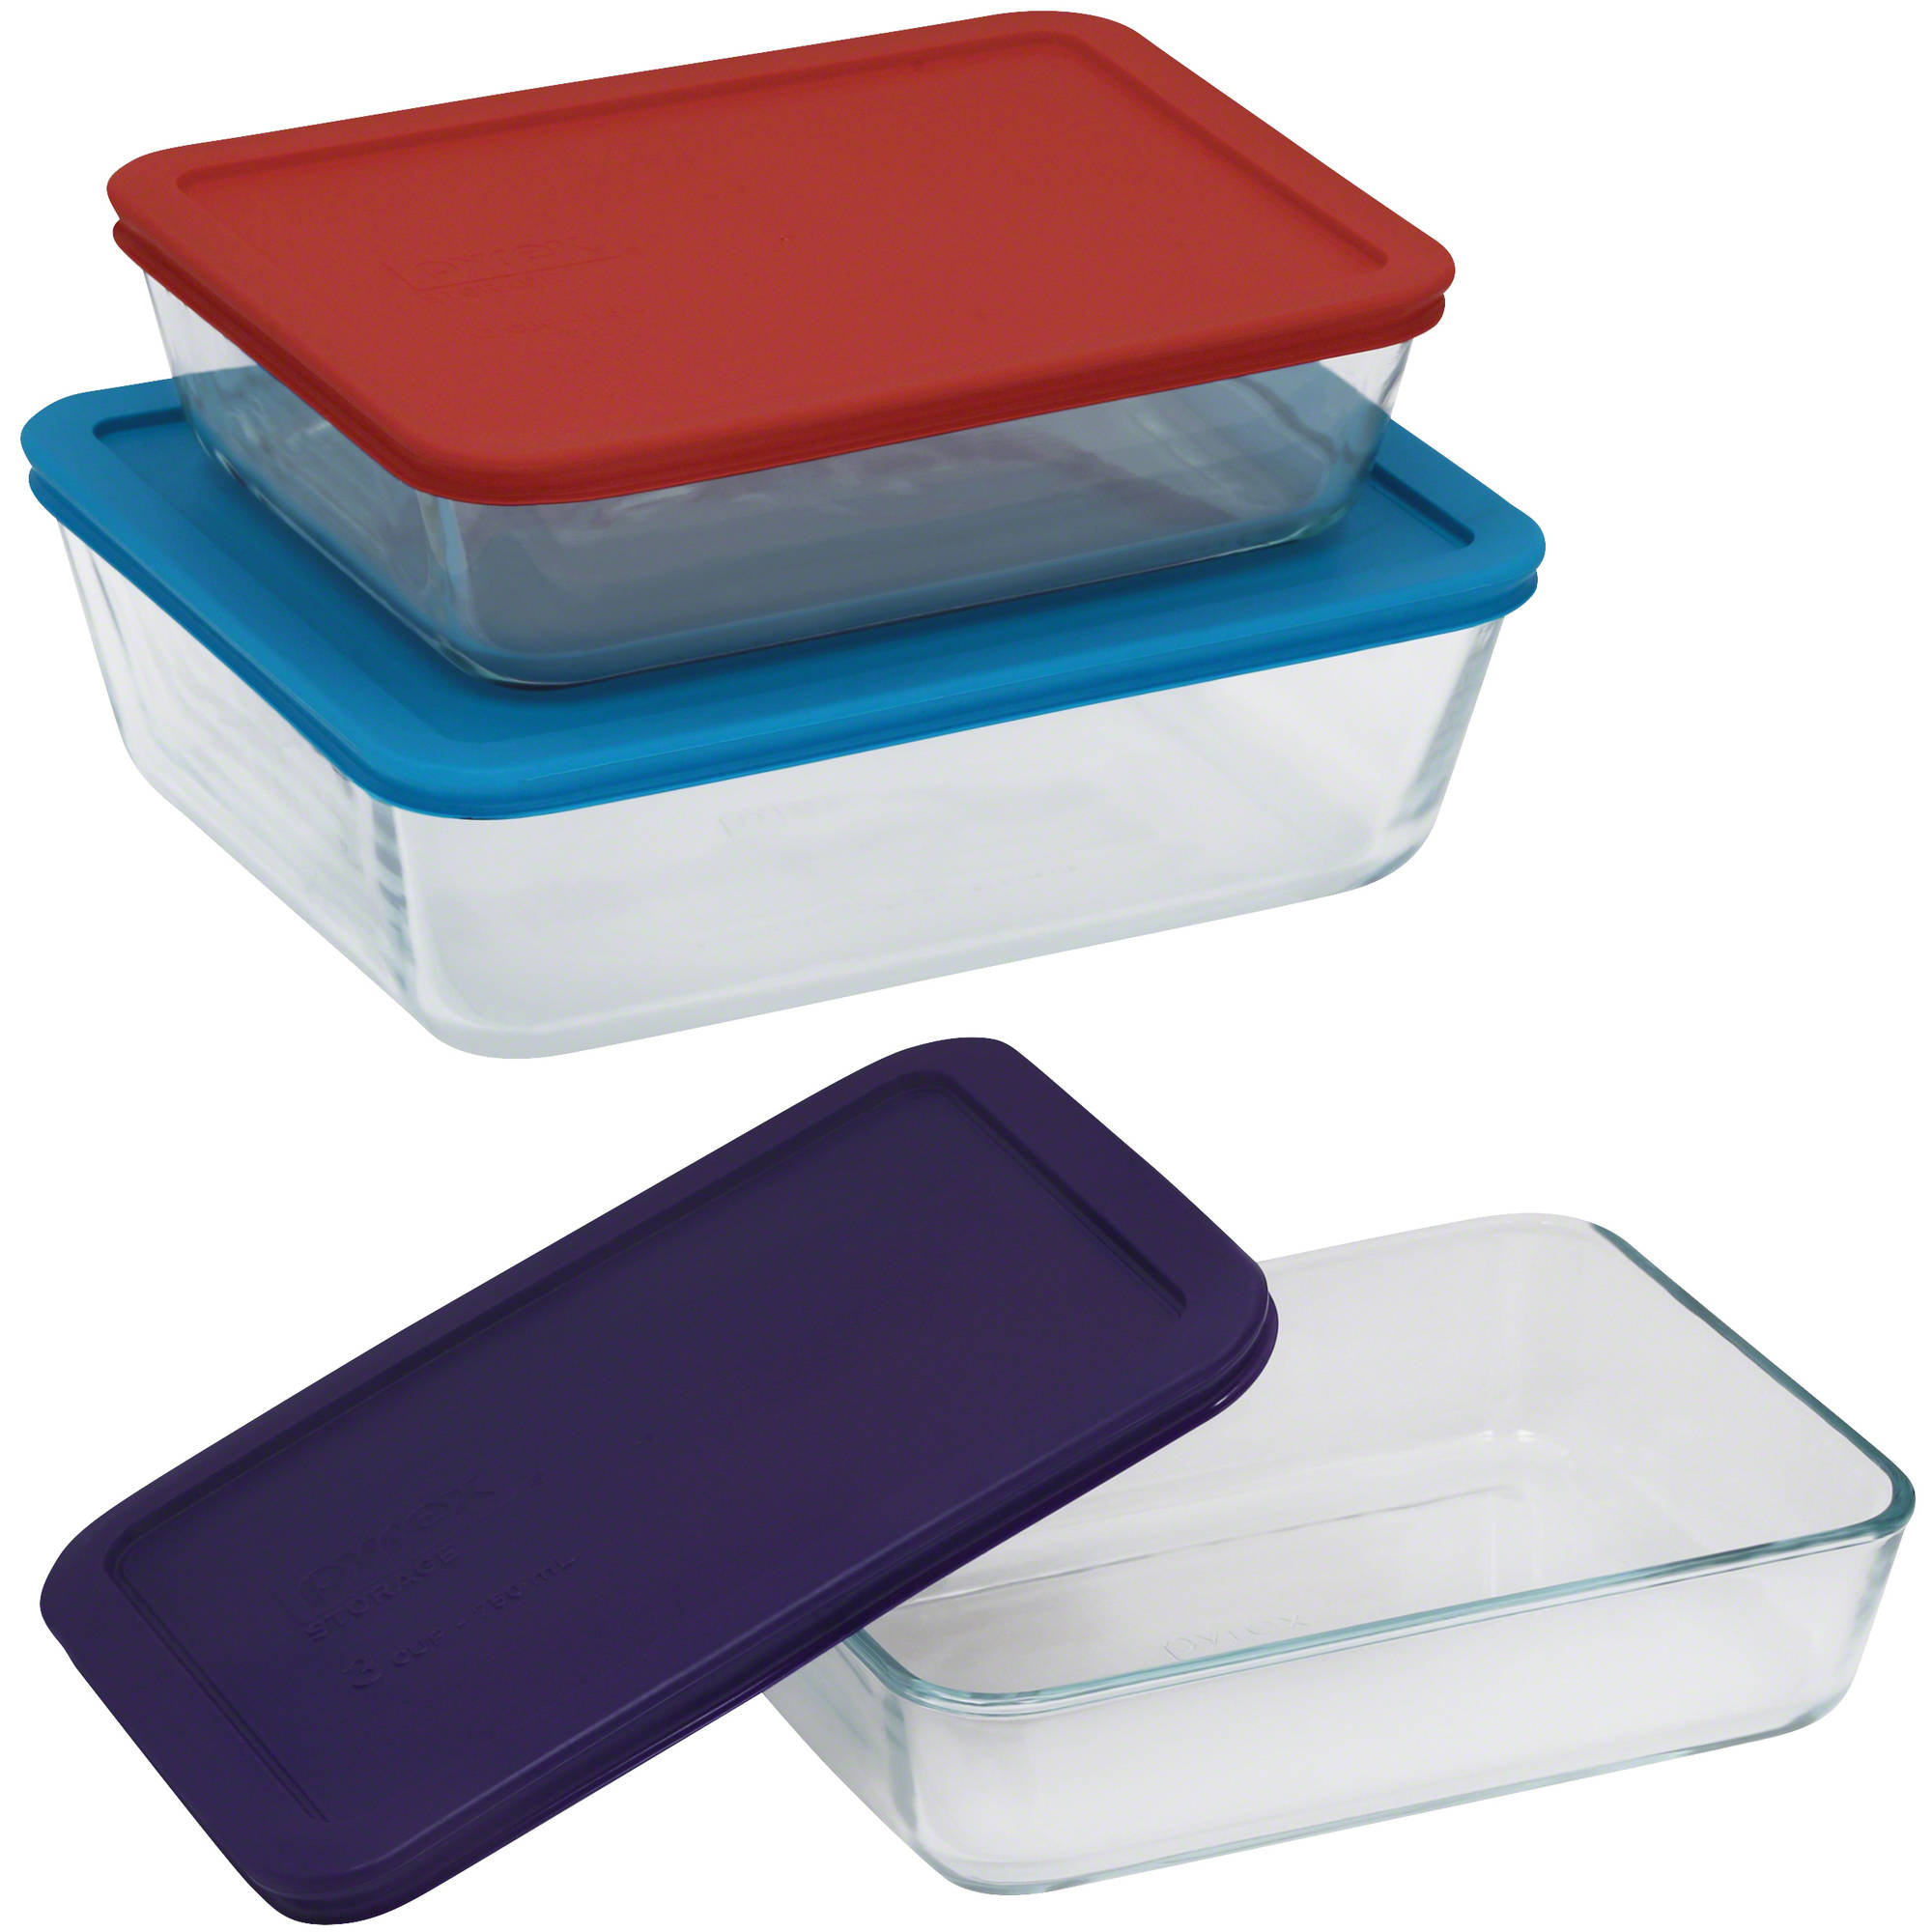 Pyrex Simply Store 6-Piece Value Pack